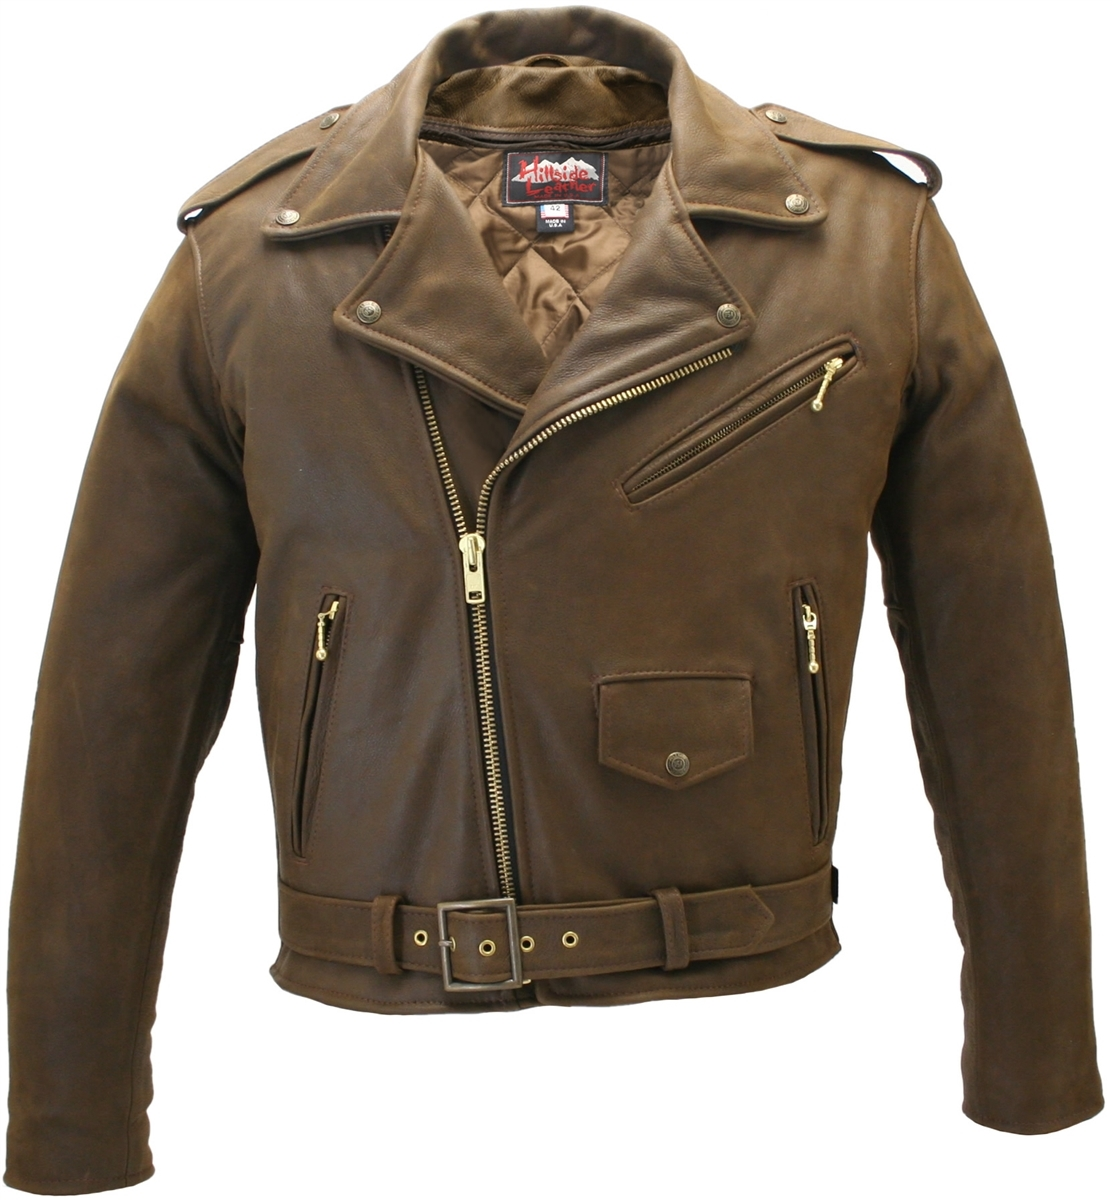 Classic Mens Vintage Motorcycle Jacket 89